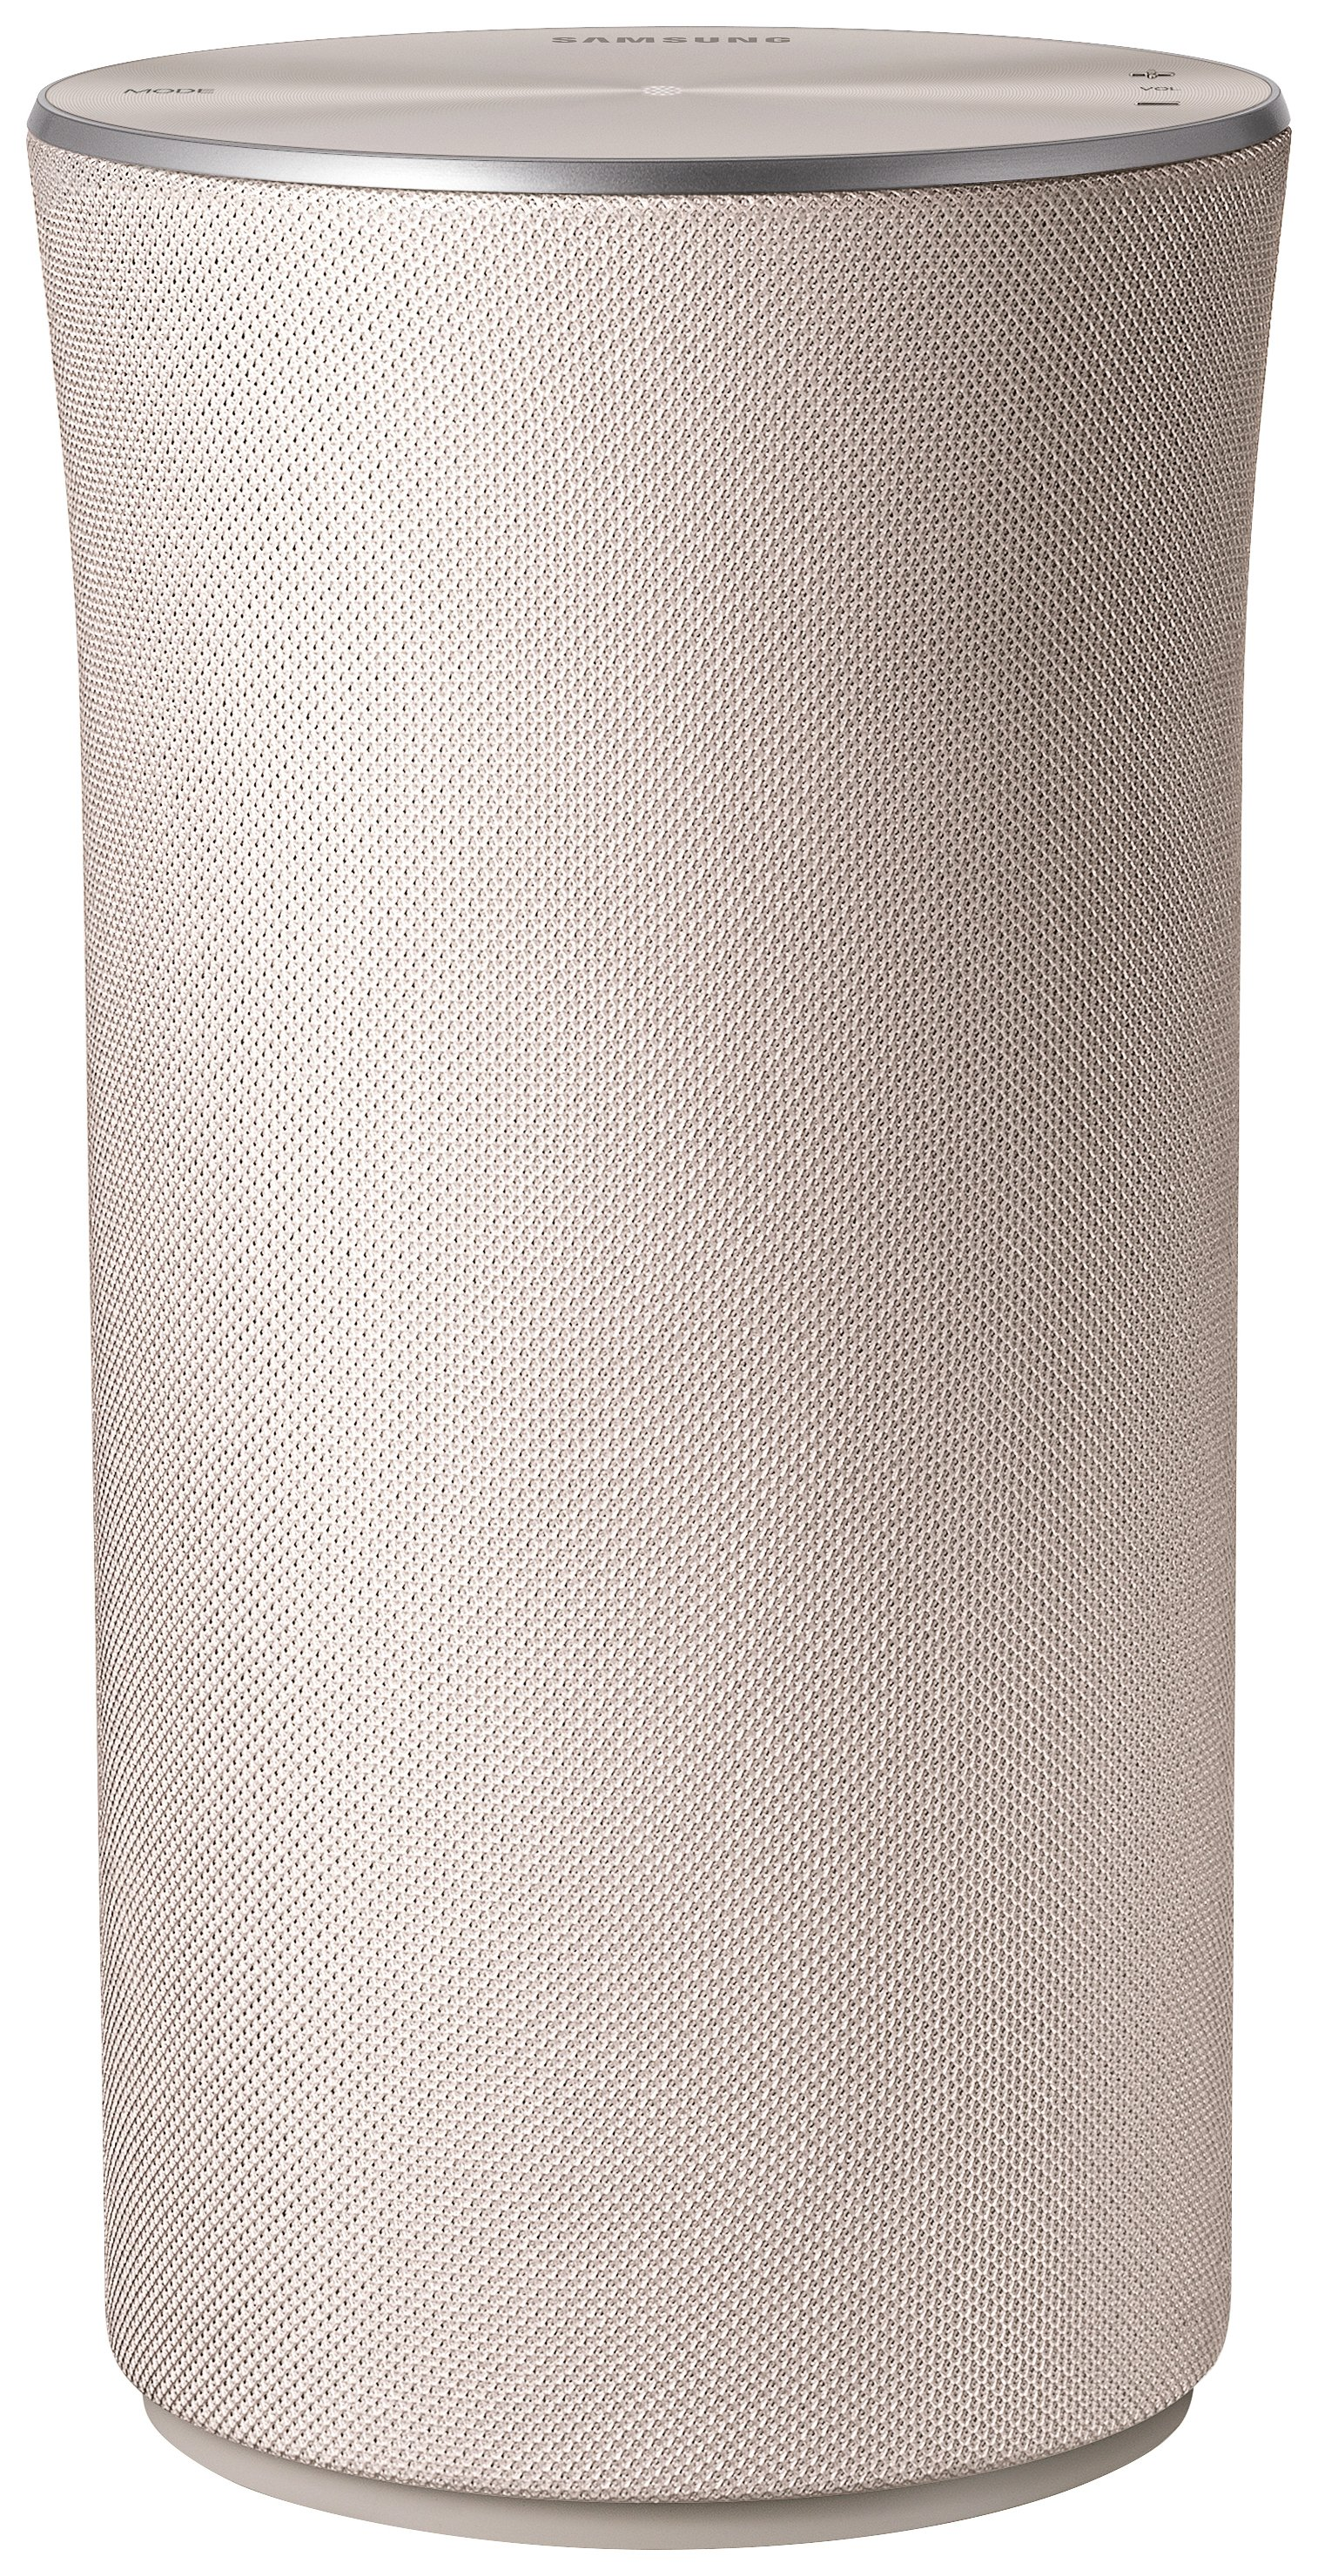 samsung-r1-360-sound-wireless-speaker-ivy